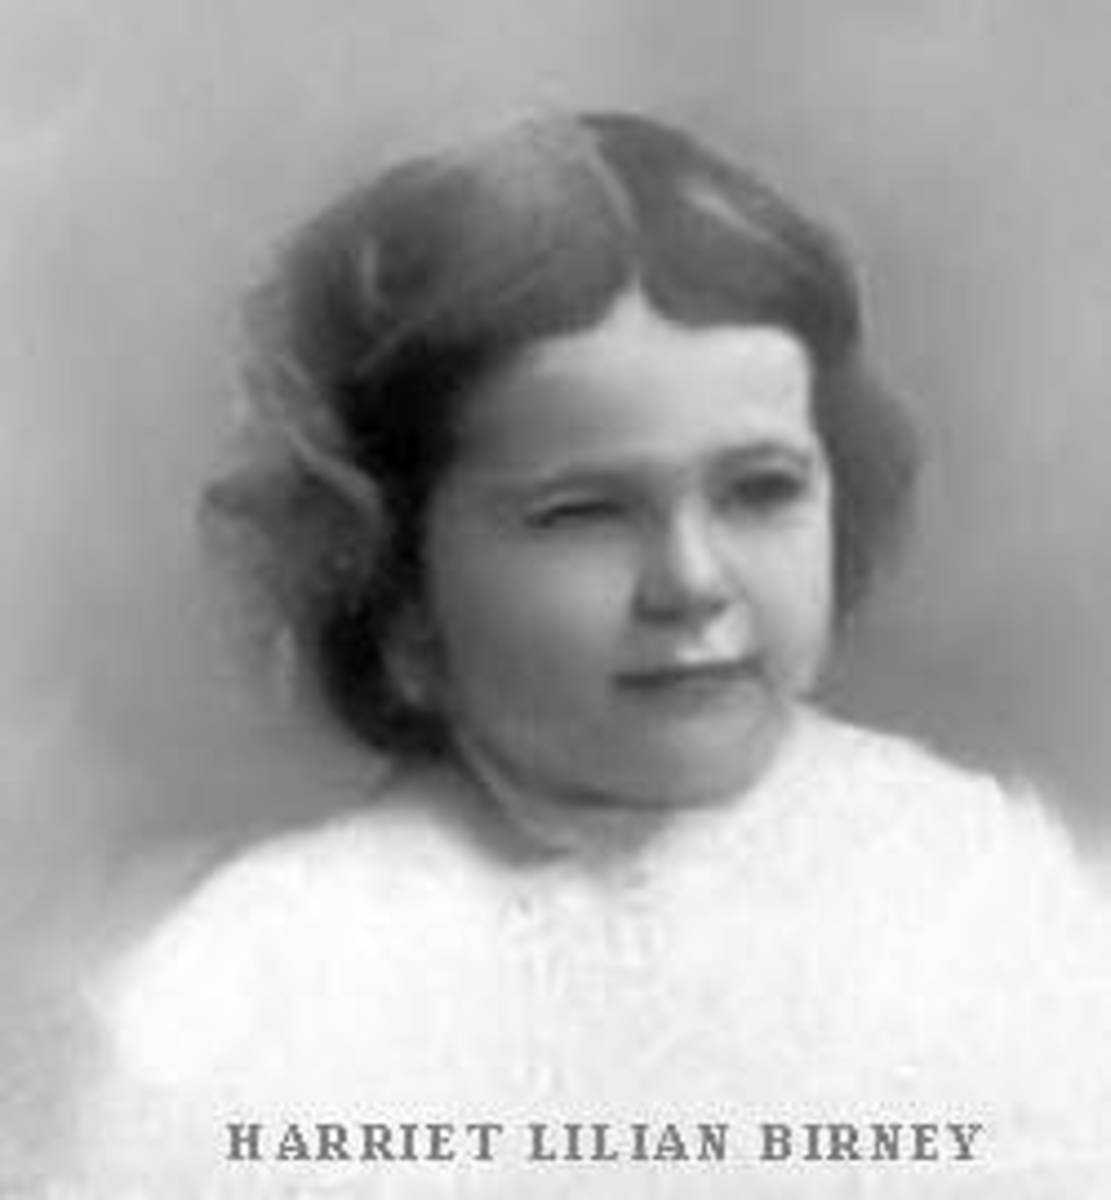 Lillian Harriet Birney as a child.  Born on 10 Jan 1895, Lillian Harriet Birney was the youngest of Alice McLellan Birney's three daughters, and the youngest of the two daughters of Alice and Theodore Birney.